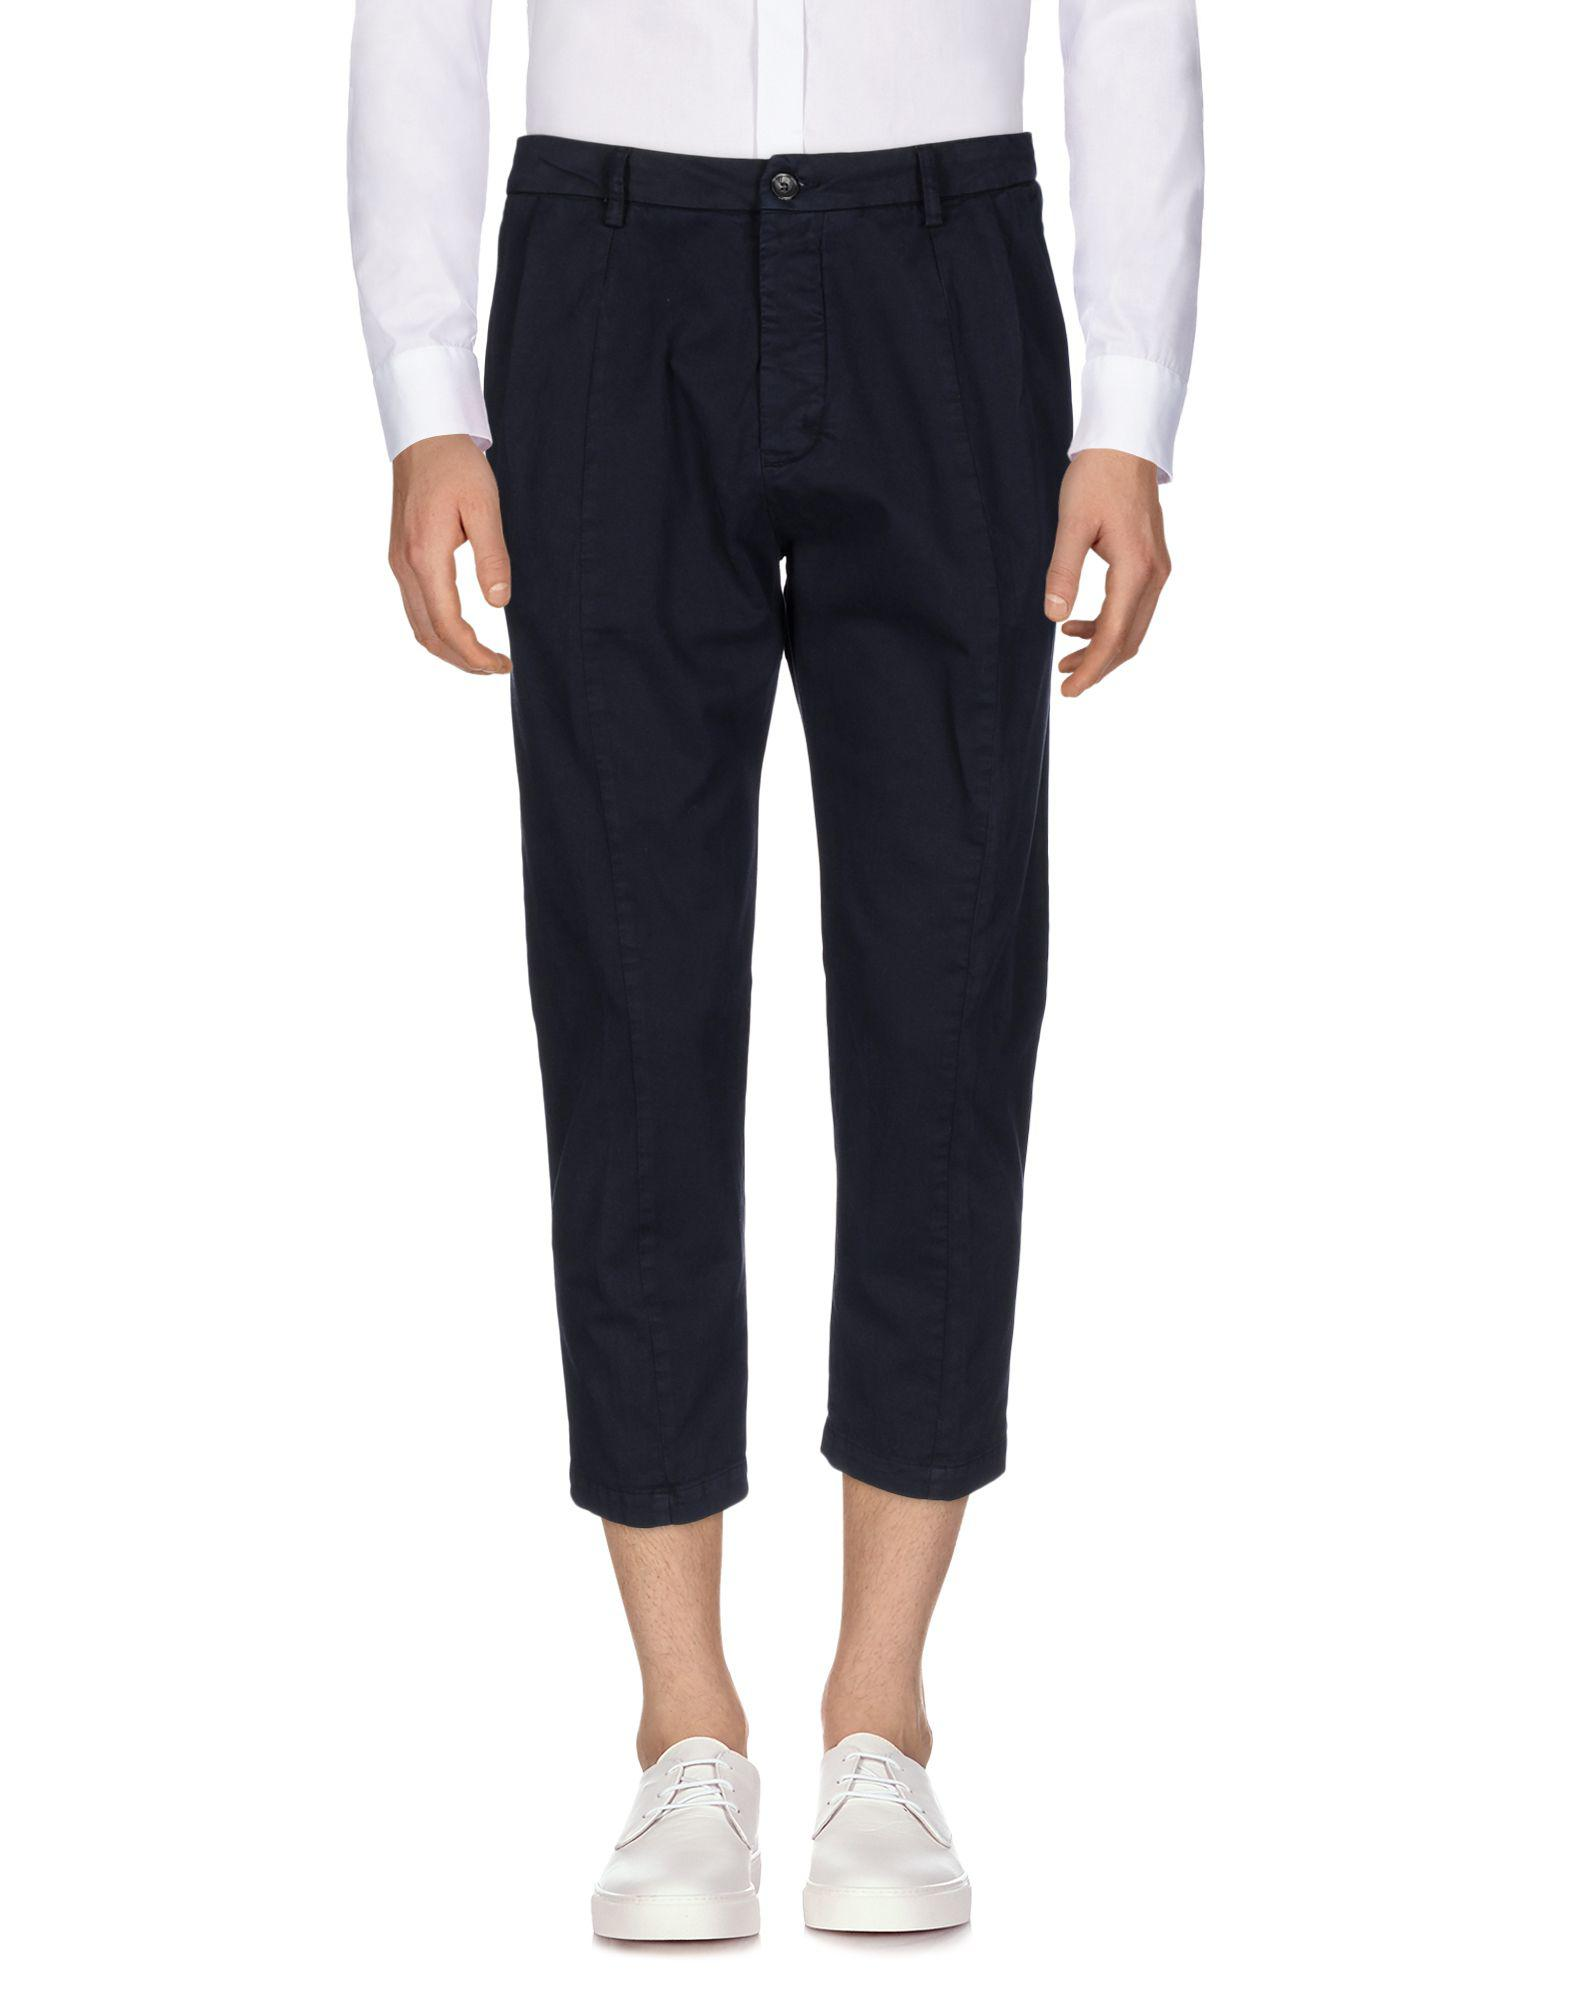 TROUSERS - 3/4-length trousers low brand Best Prices Online 2018 Cheap Sale Cheap Wide Range Of Deals Cheap Price InbraRP